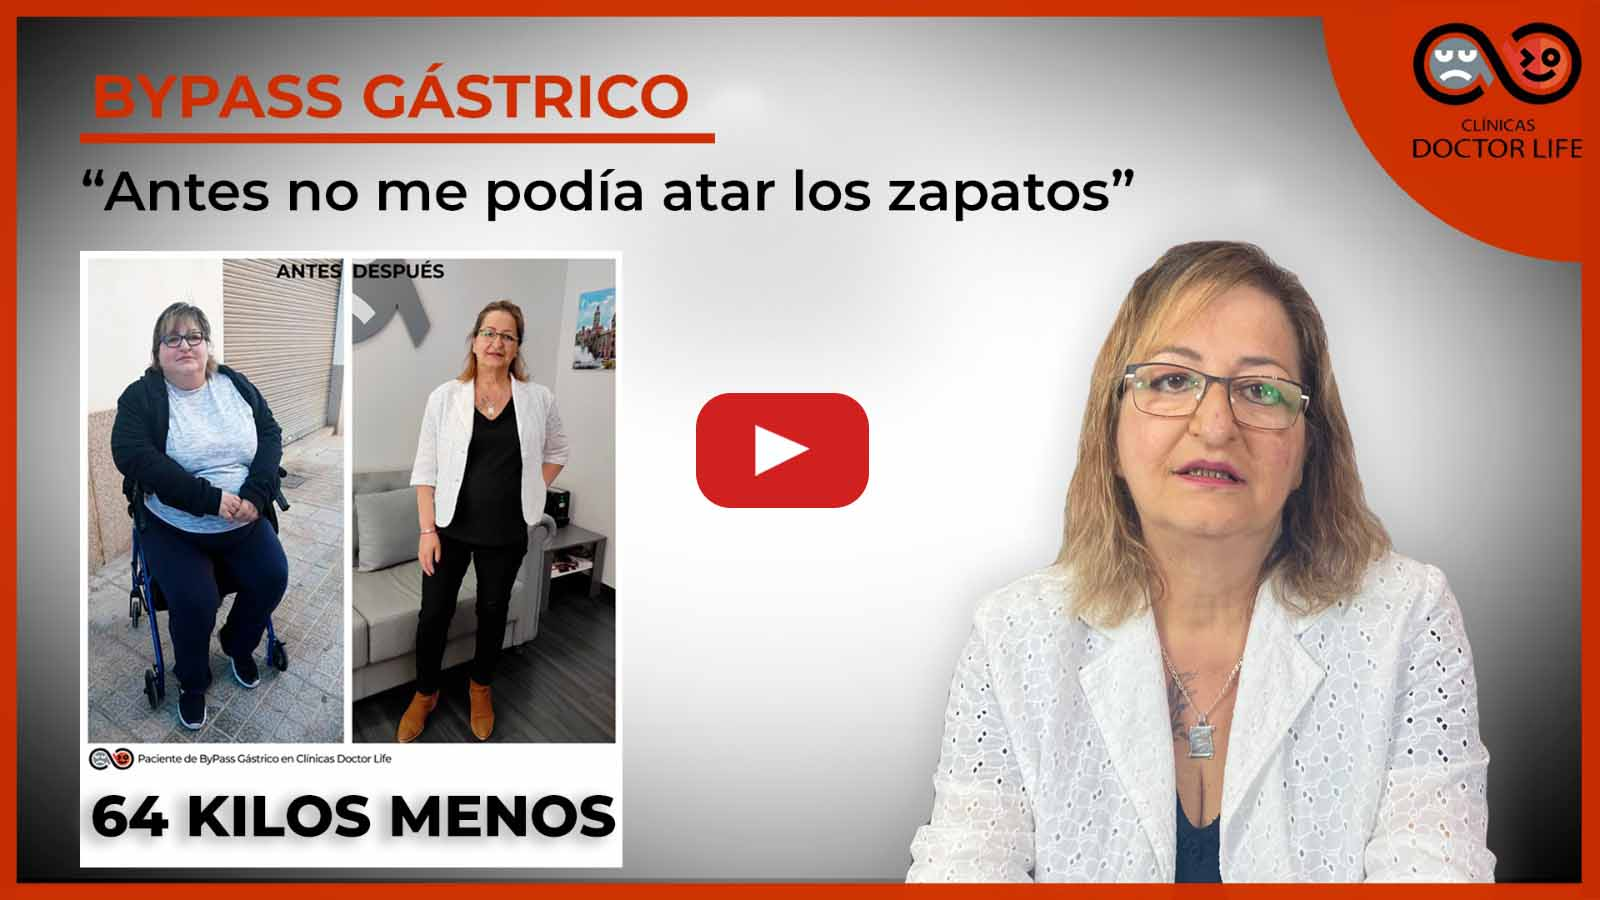 ByPassGastrico experiencia real